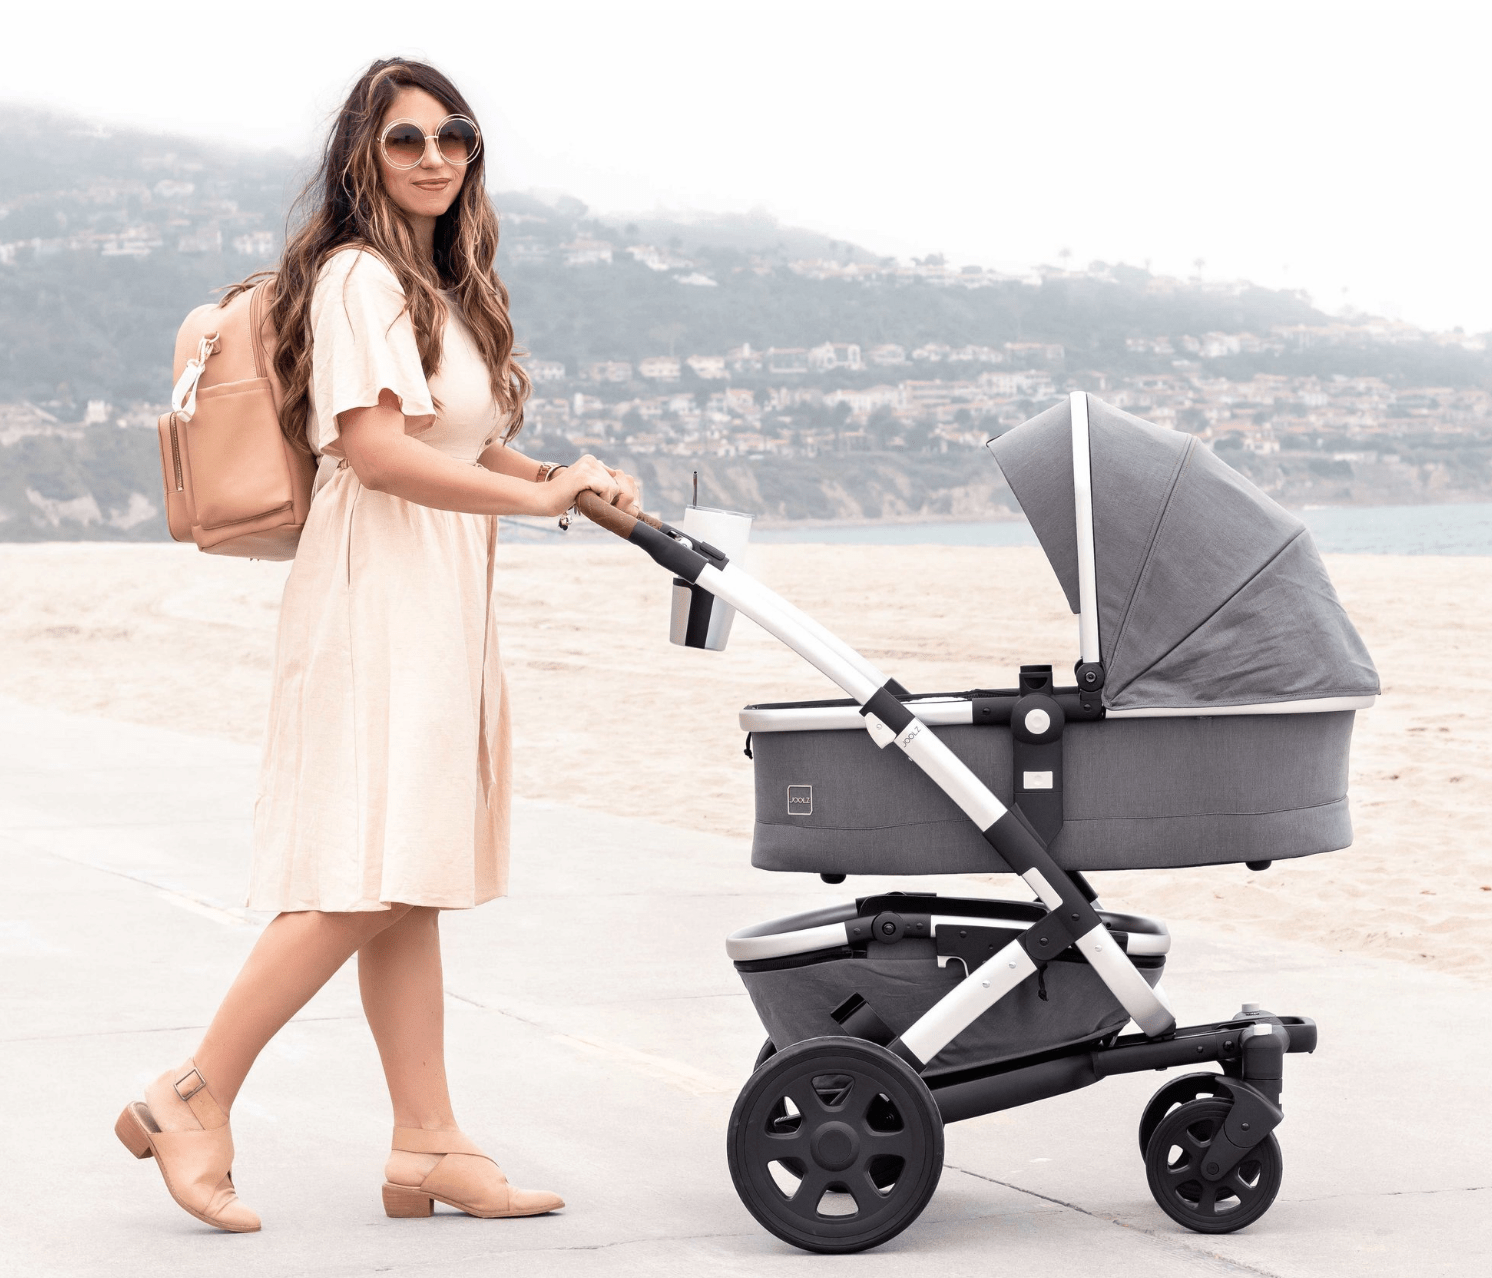 Joolz Stroller Amazon Stroller Rides At The Beach West Coast Capri